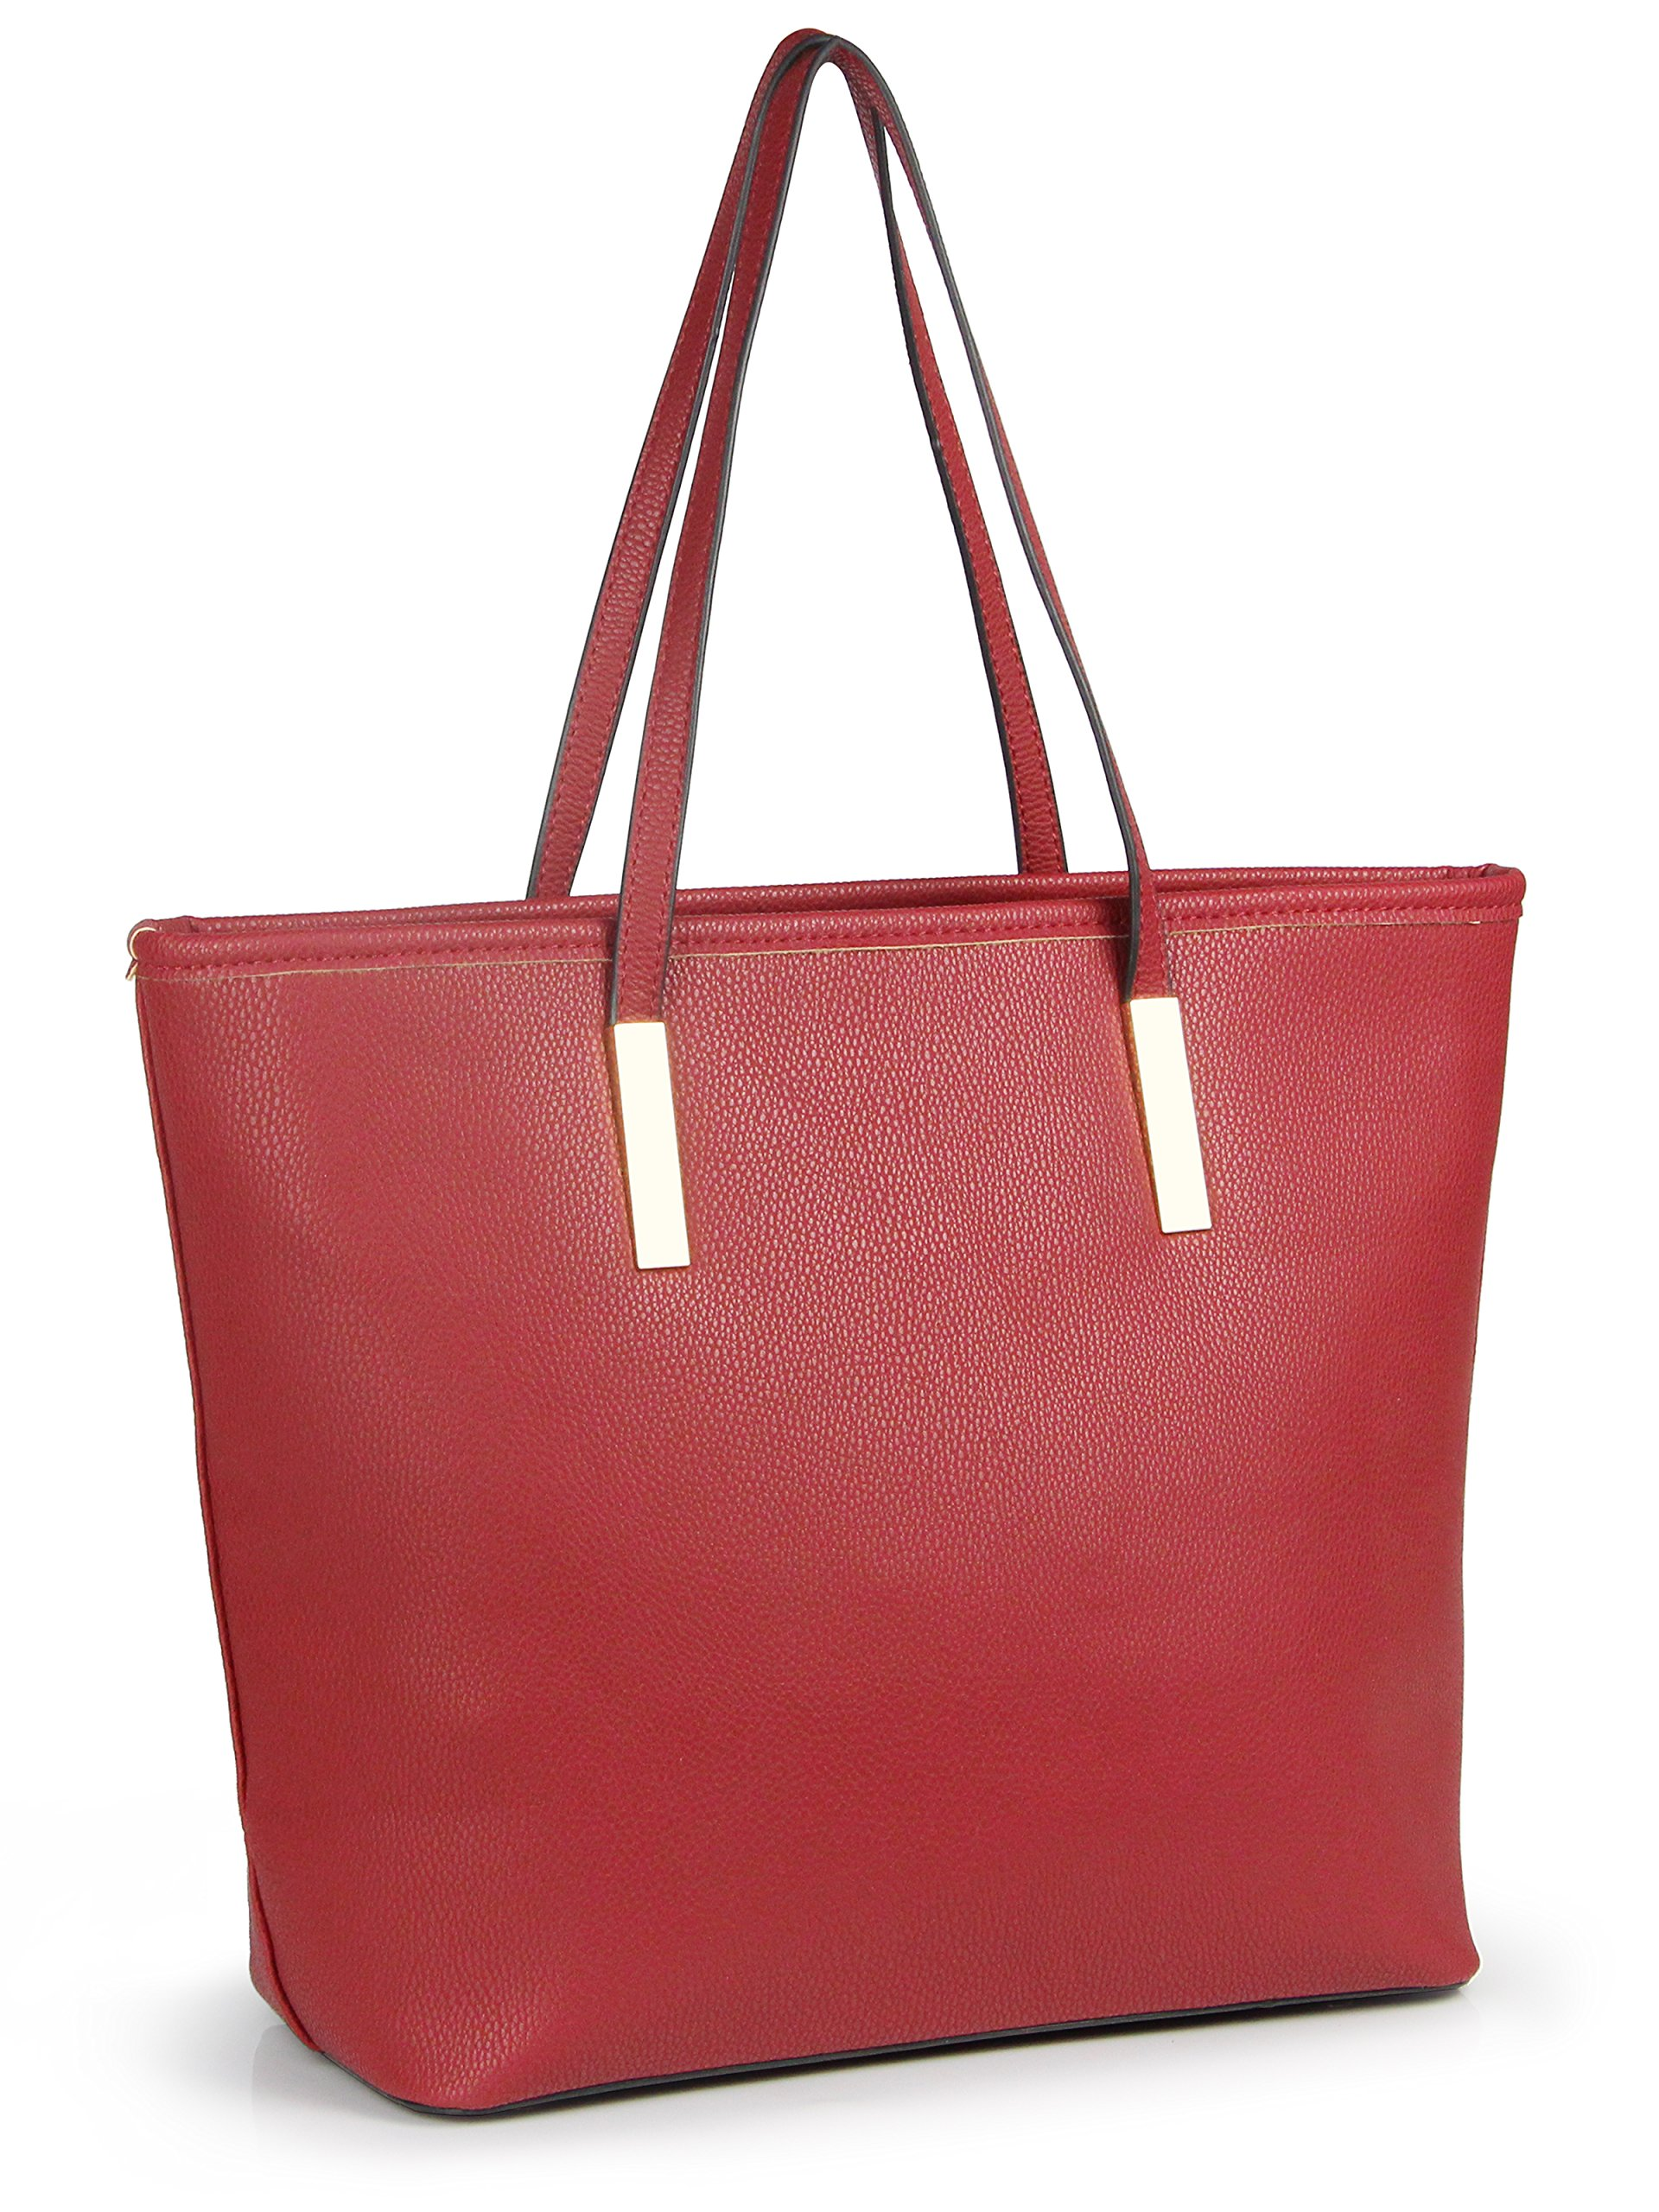 Simple Solid Color Pu Leather Top Handle Satchel Handbags for Women Shoulder Bags (Red)